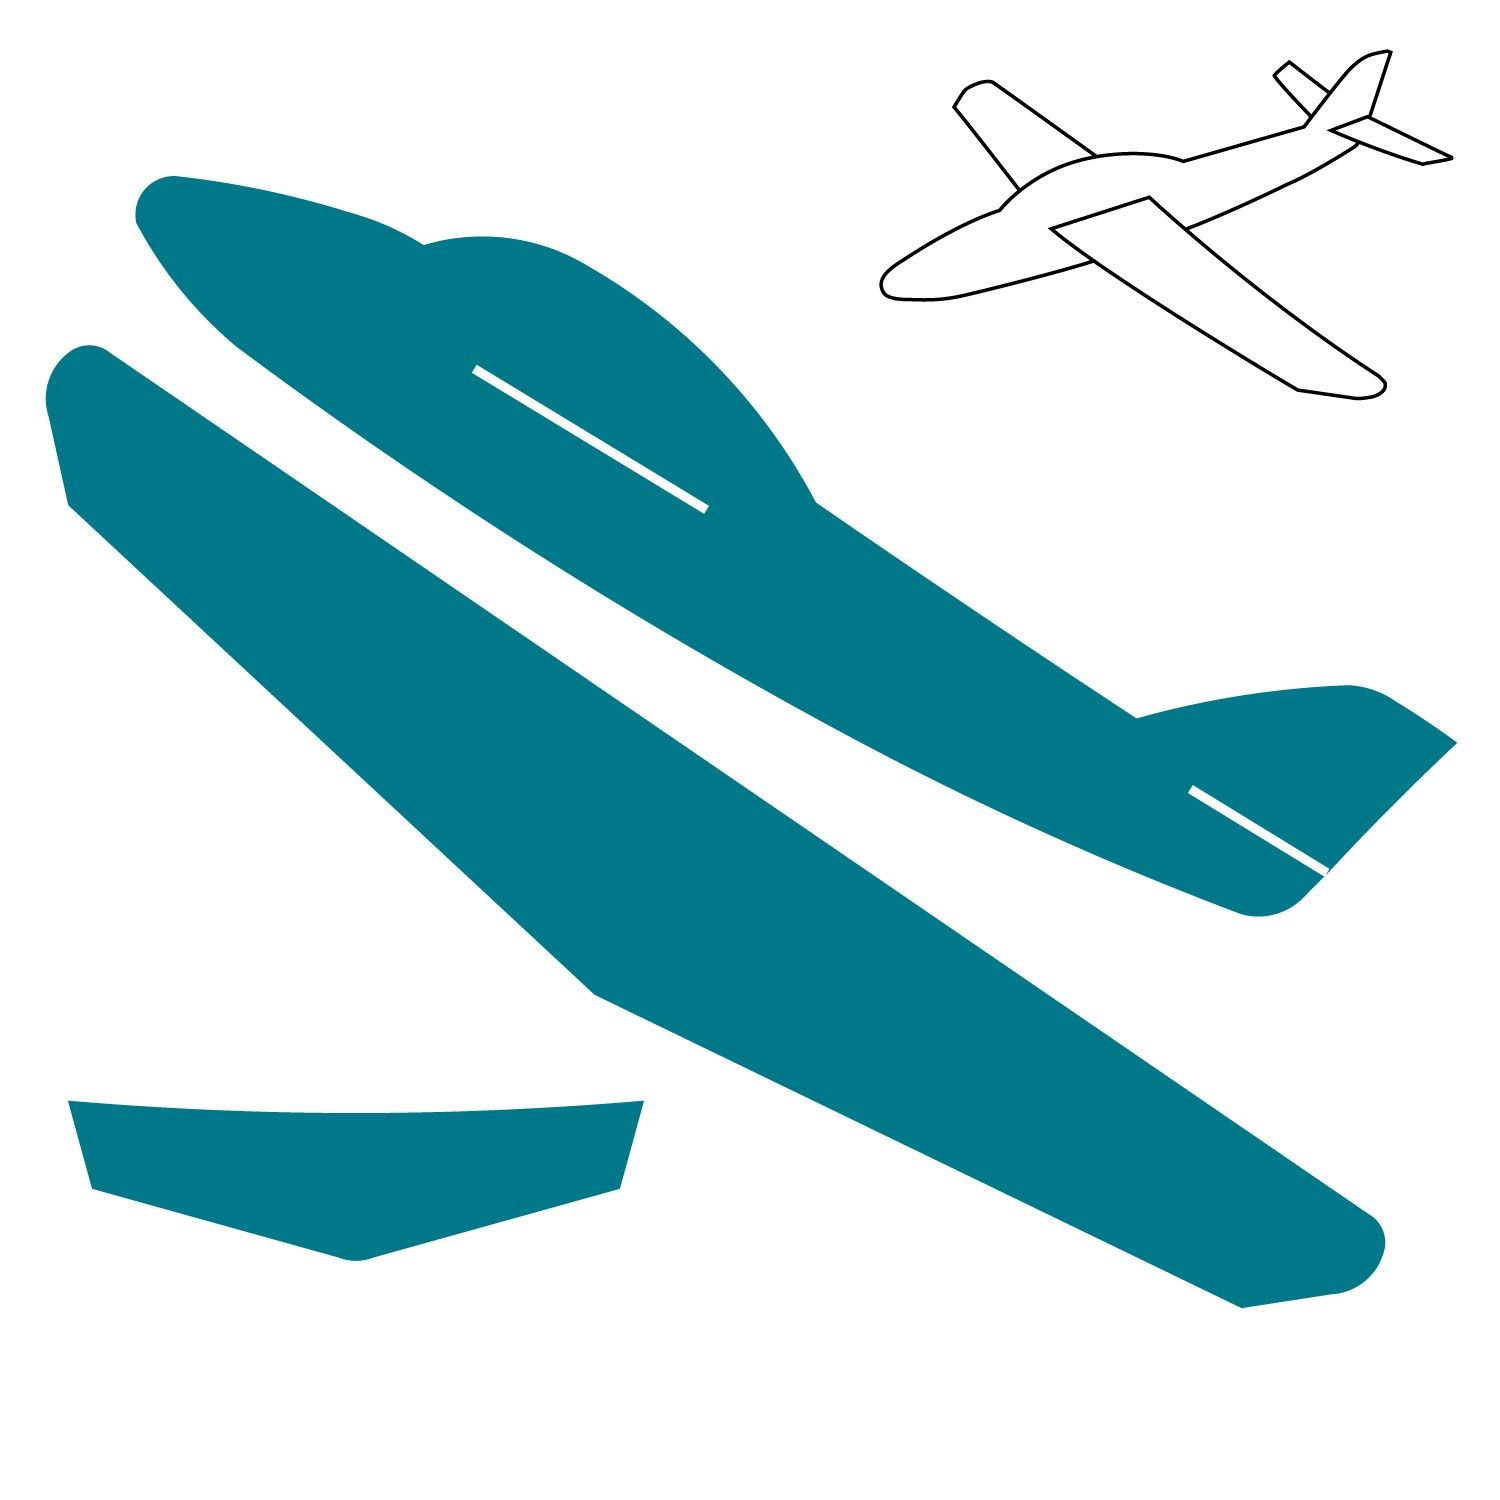 Cardboard Airplane Template